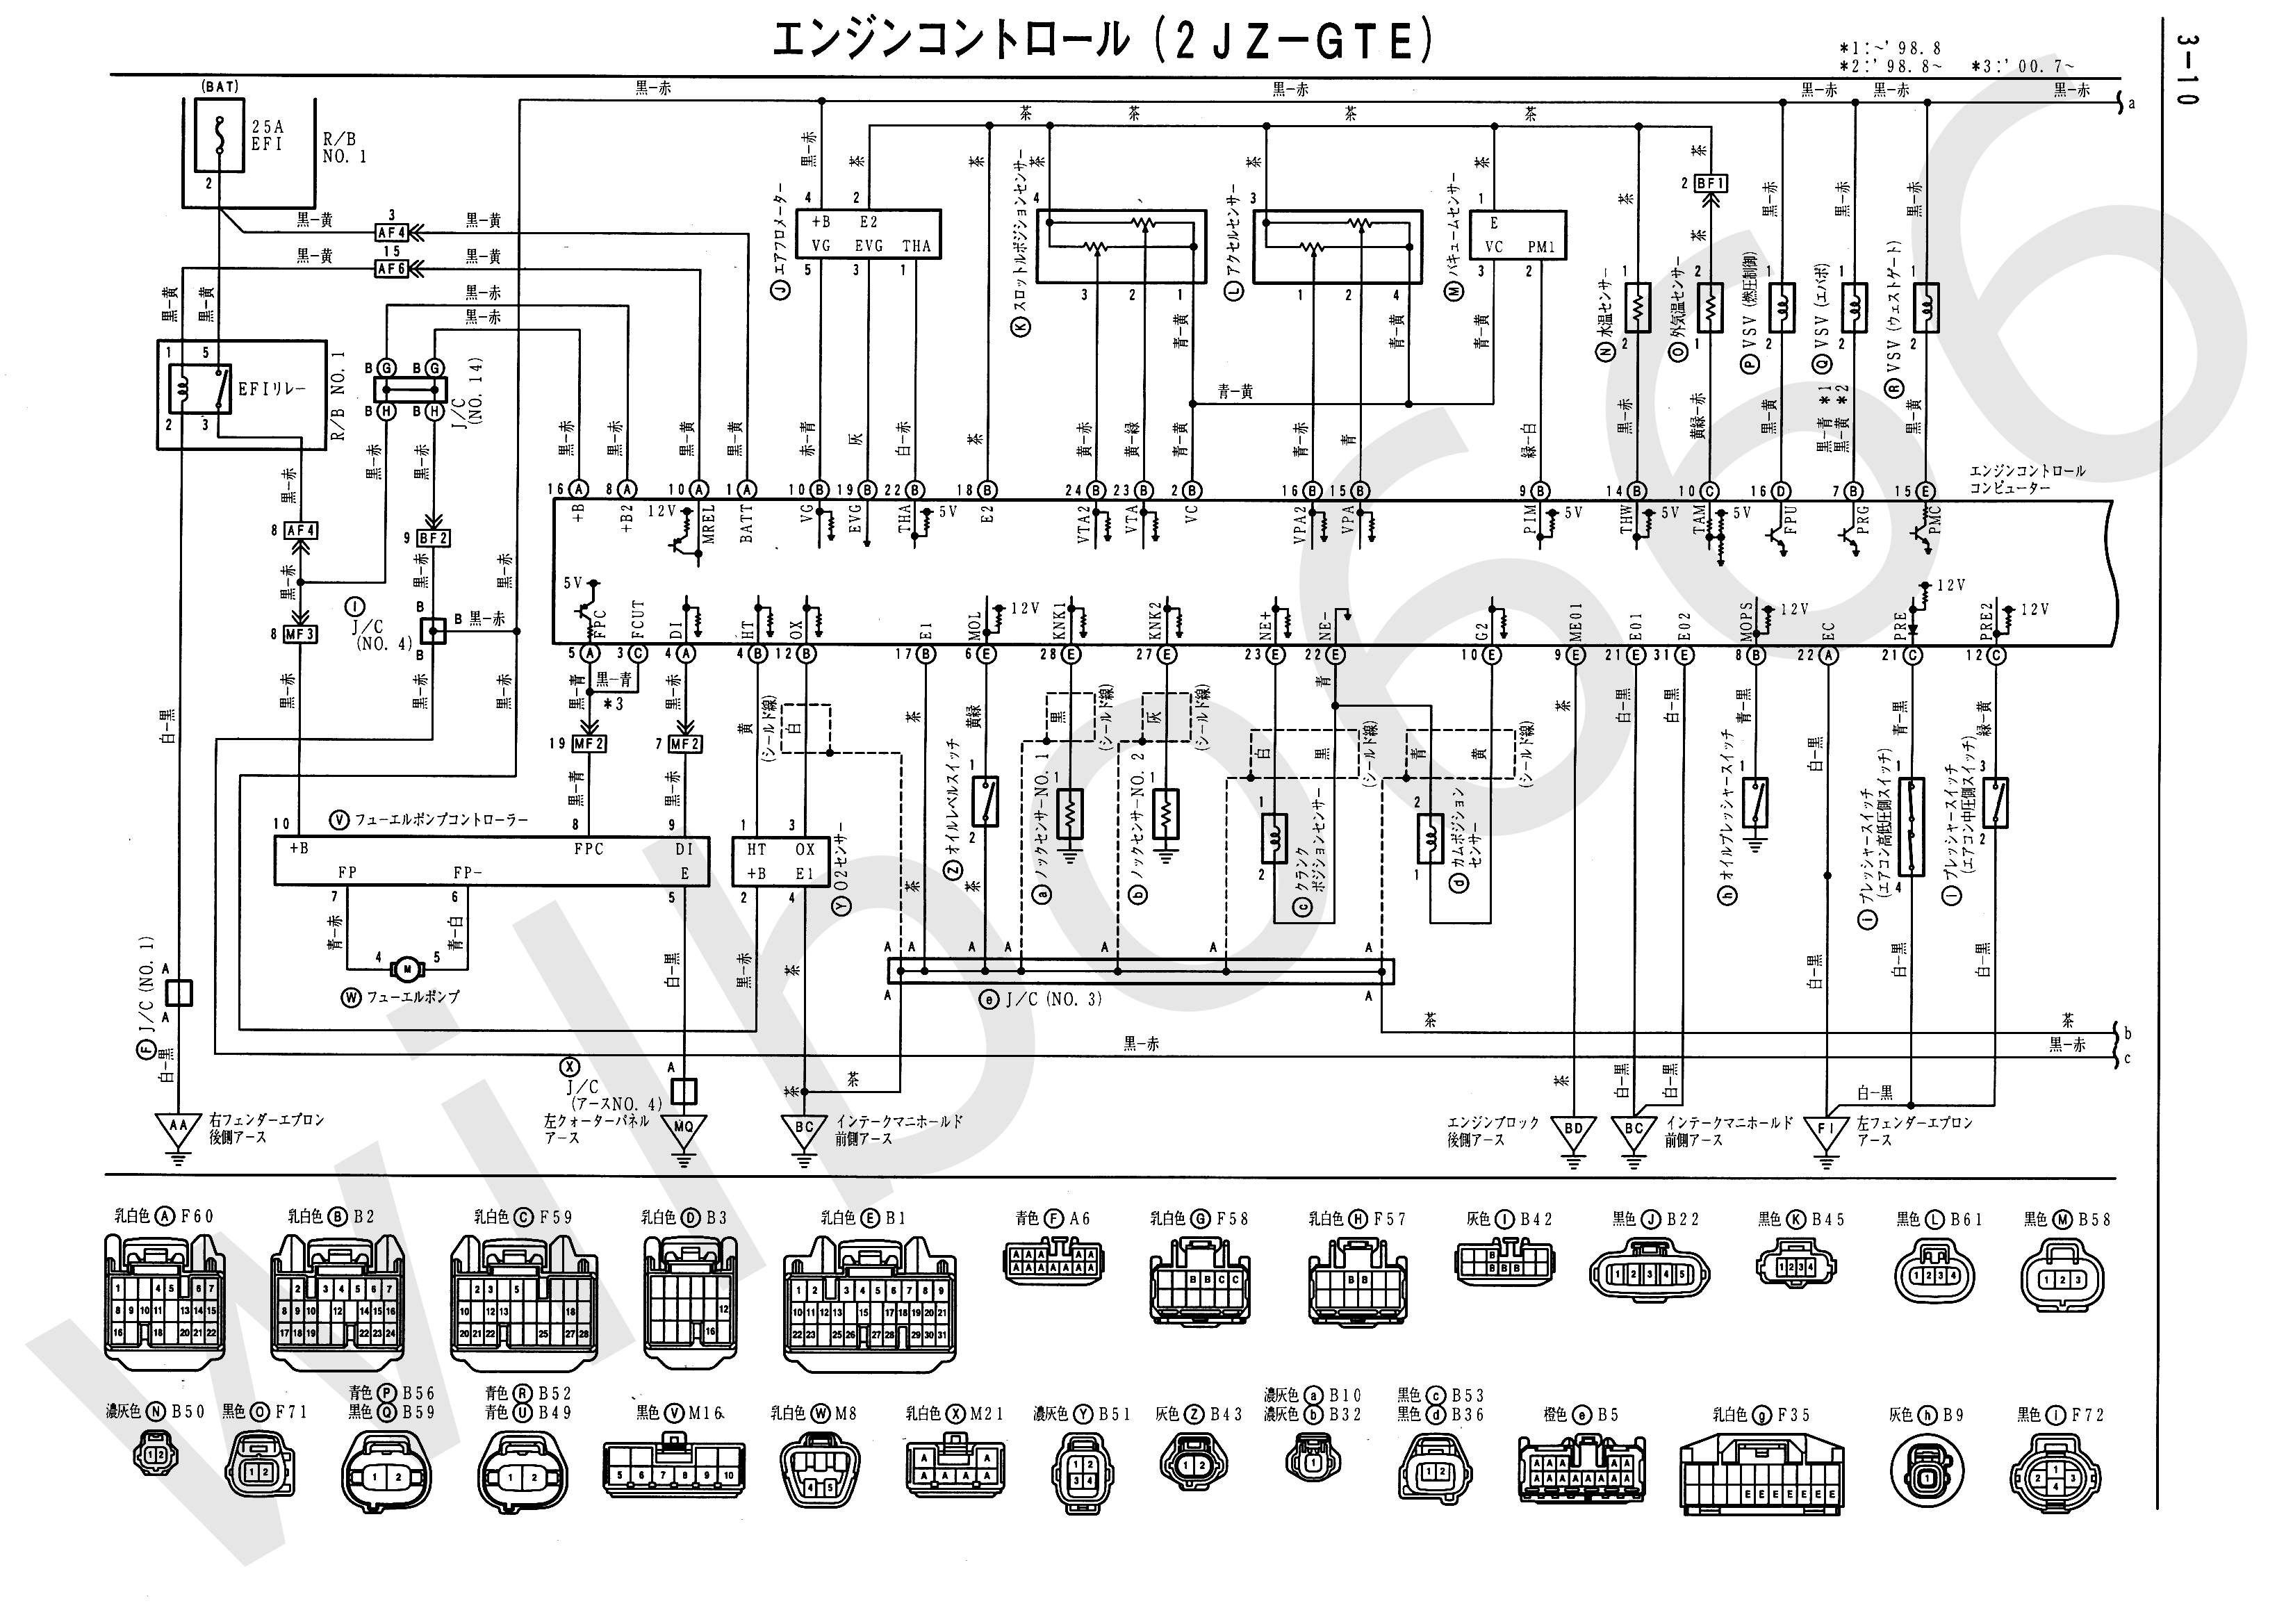 2JZ GTE 20VVTi 20JZS161 20Aristo 20Engine 20Wiring on toyota transmission diagrams